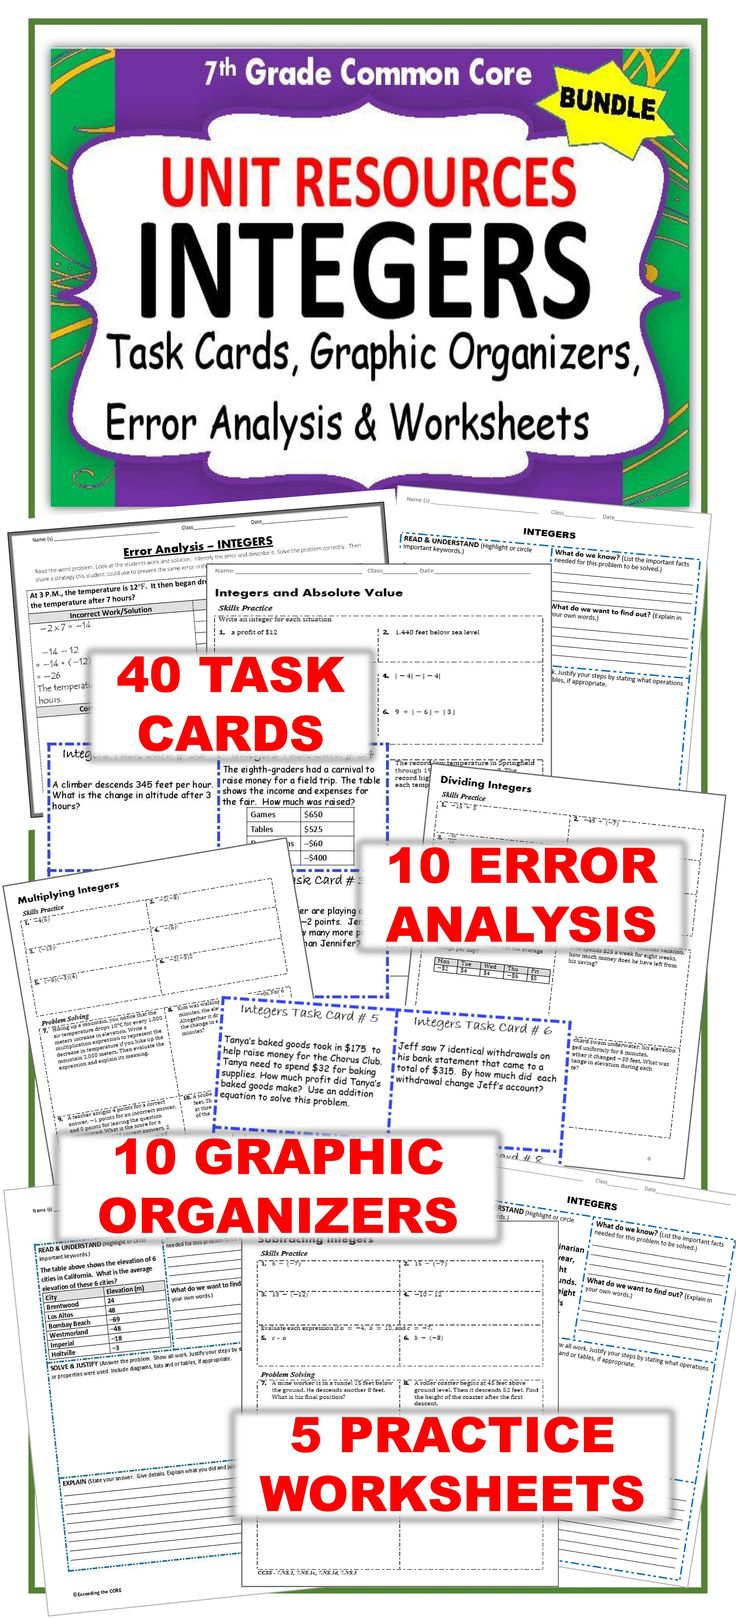 hight resolution of Exceeding the CORE: 7th Grade INTEGERS BUNDLE - Task Cards